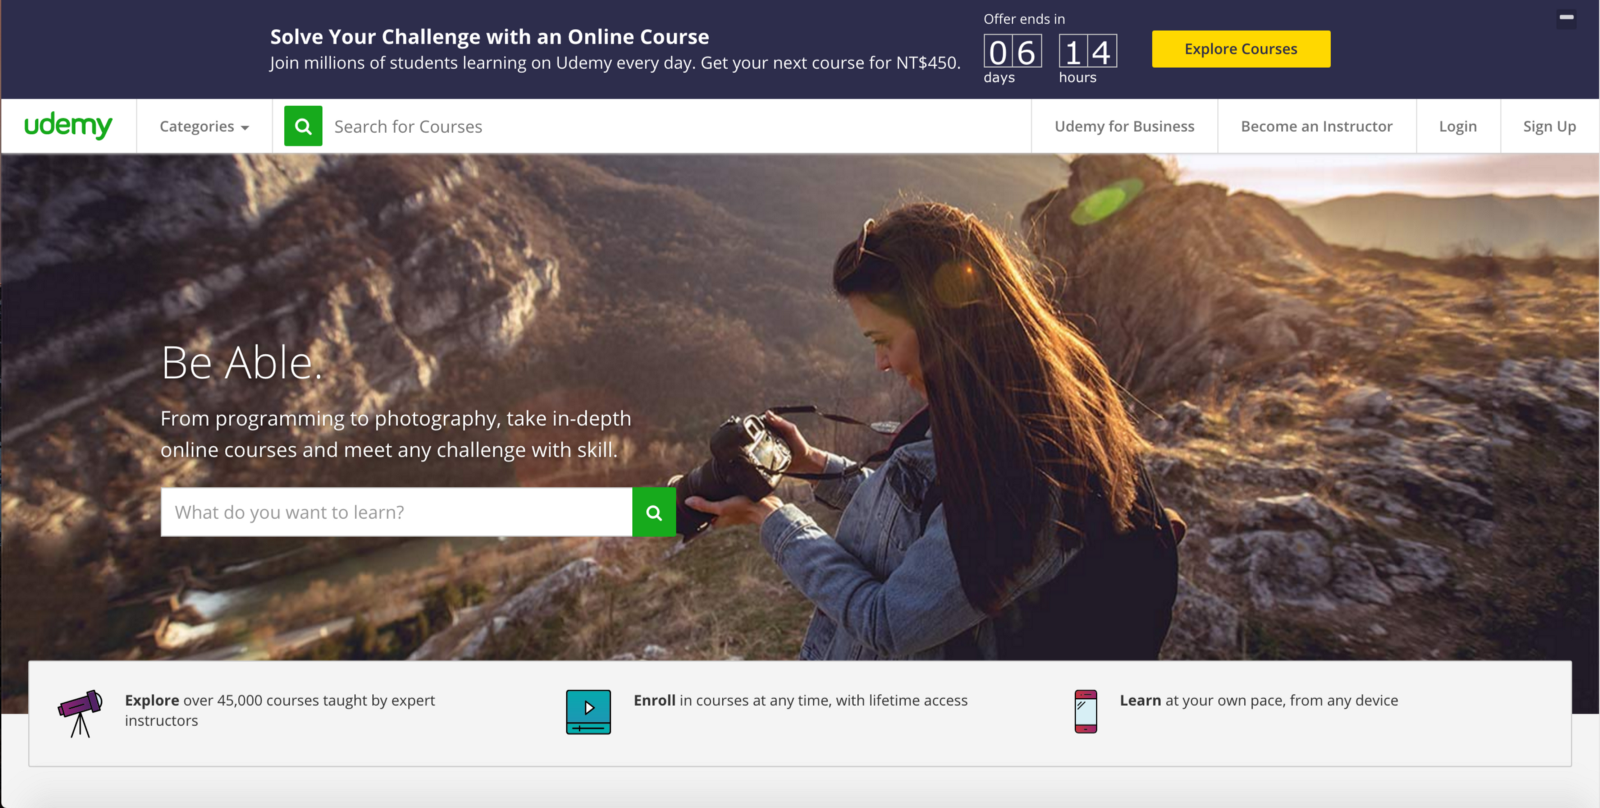 Self-learning on Udemy website image - eulercoder